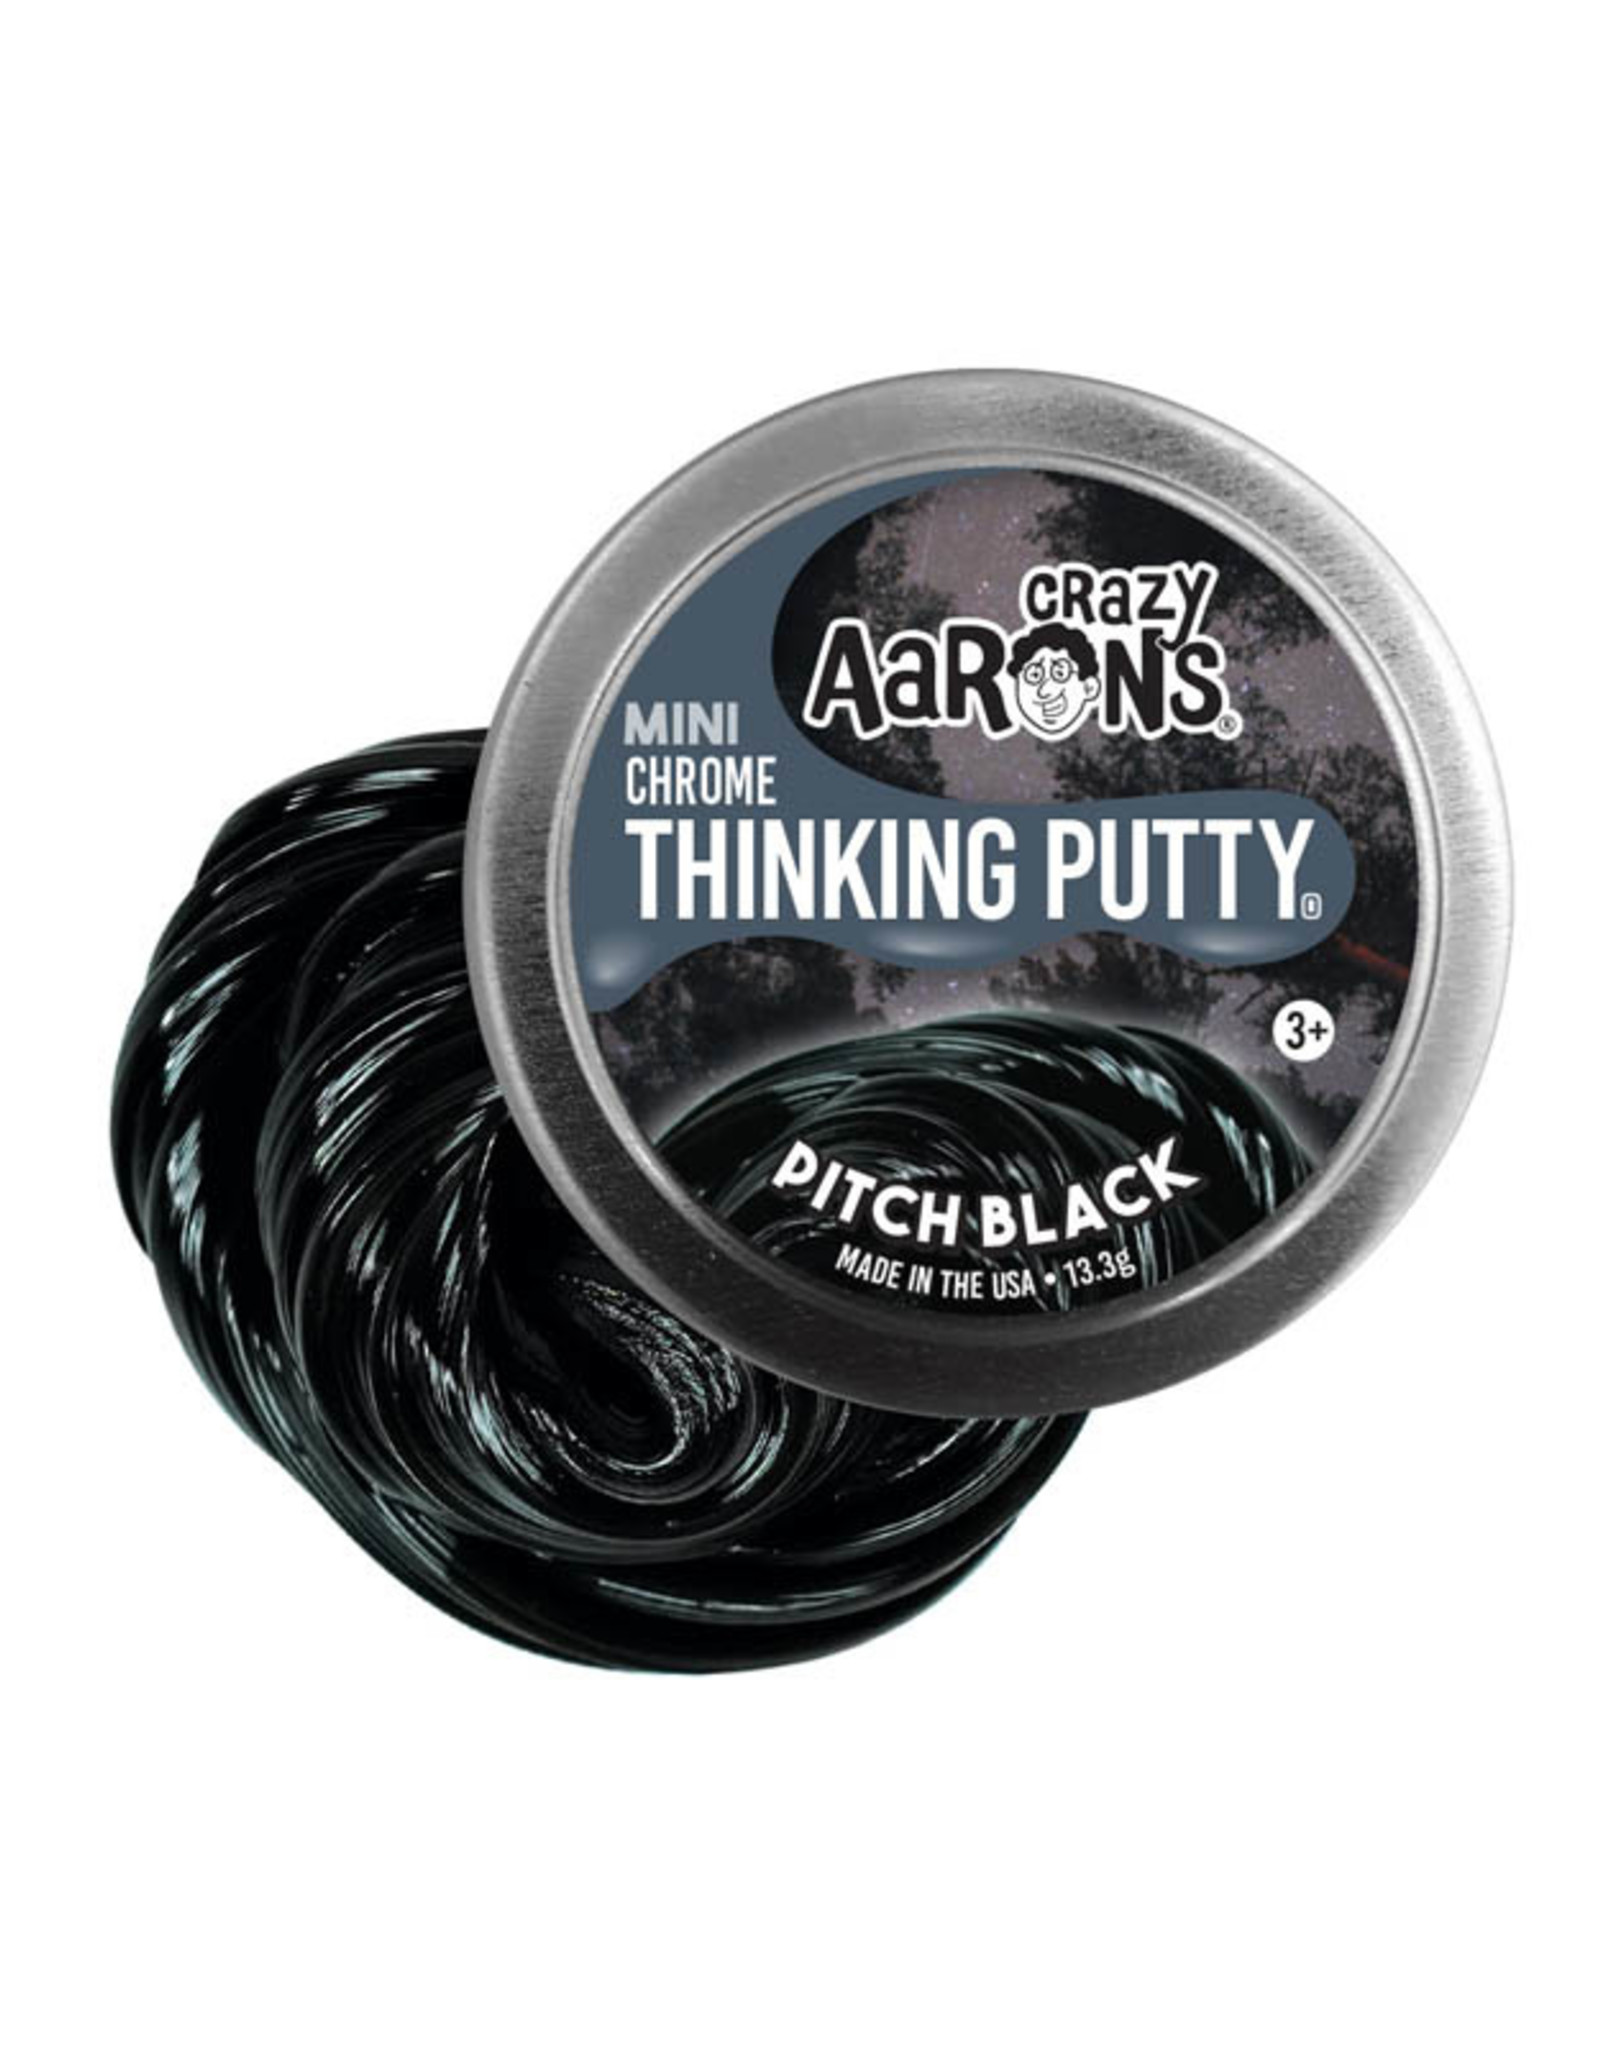 Crazy Aaron's Thinking Putty Small Tin - Pitch Black